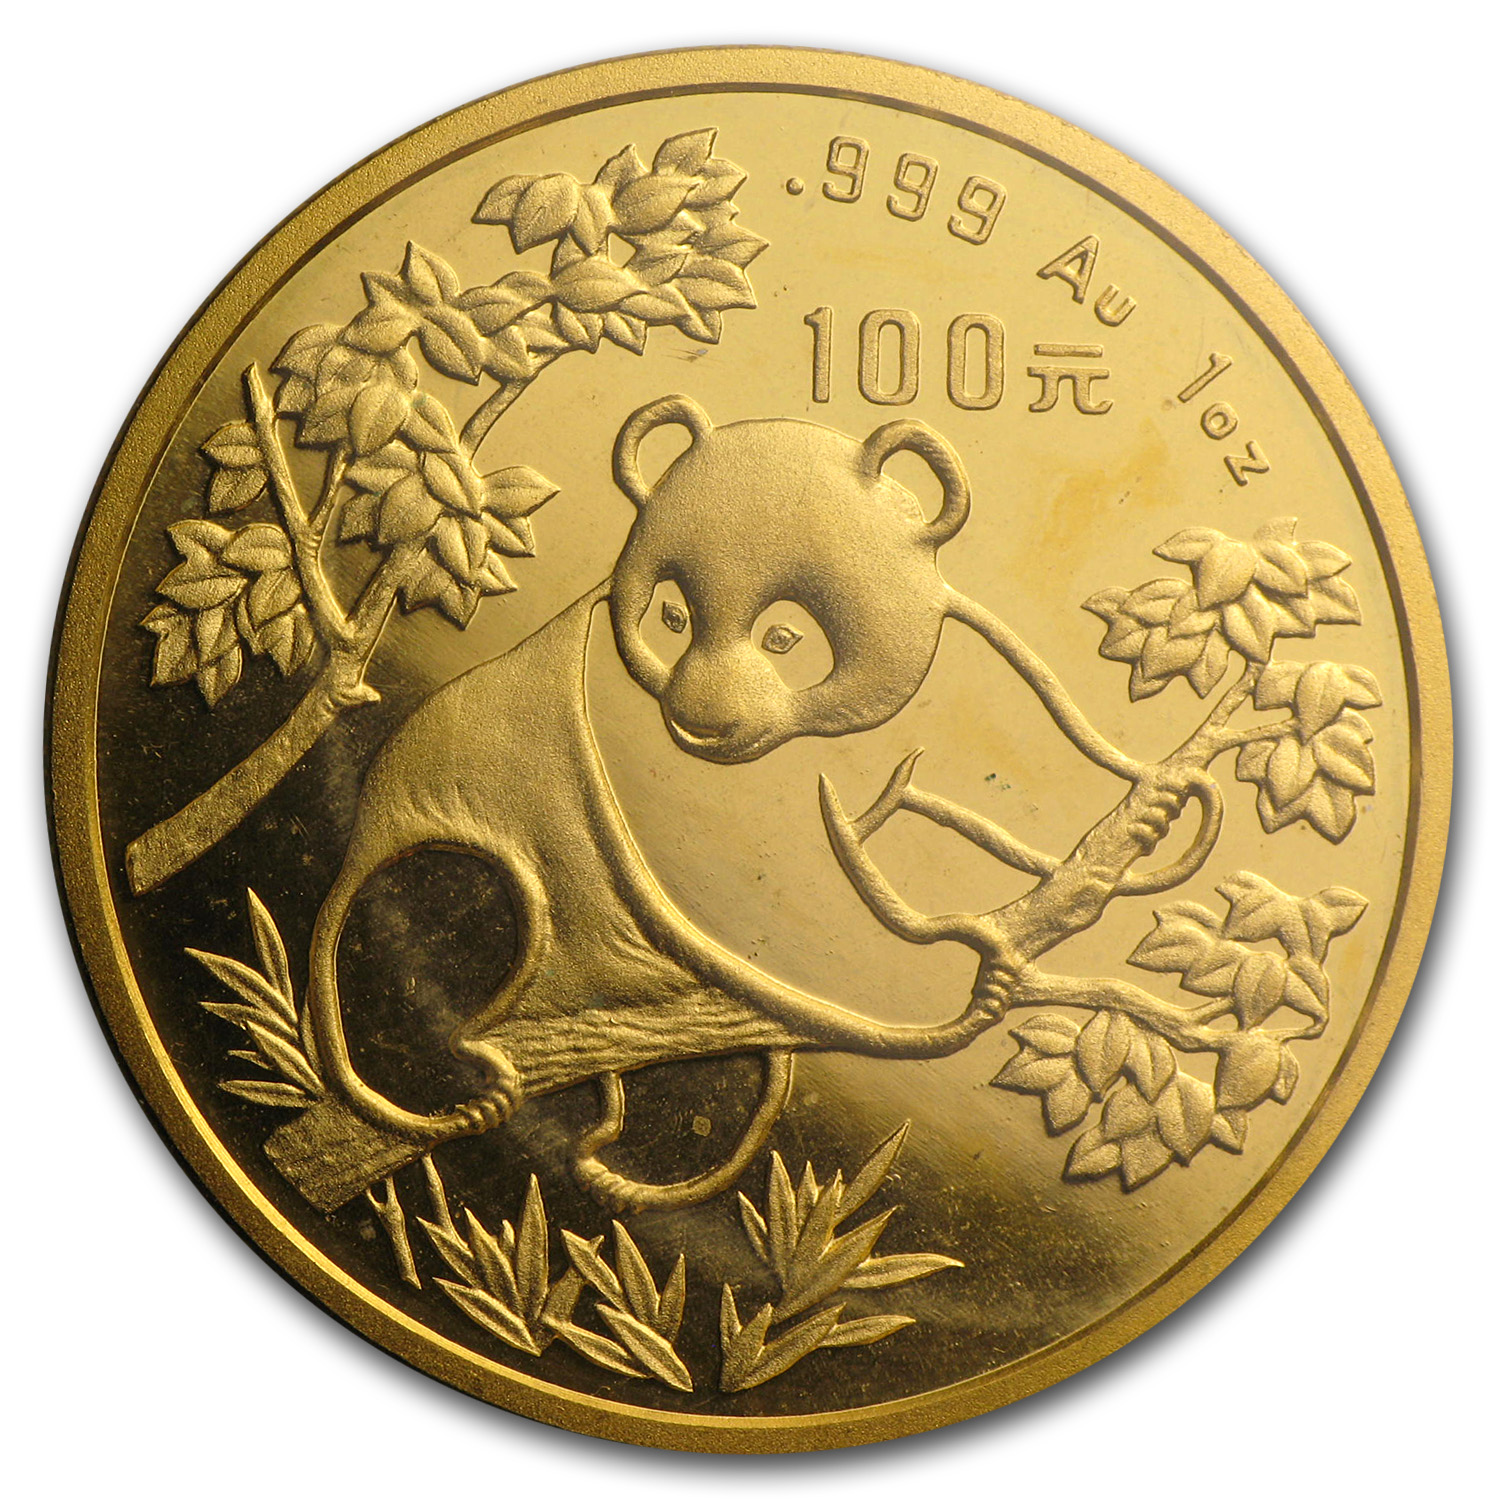 1992 China 1 oz Gold Panda Small Date BU (Sealed)